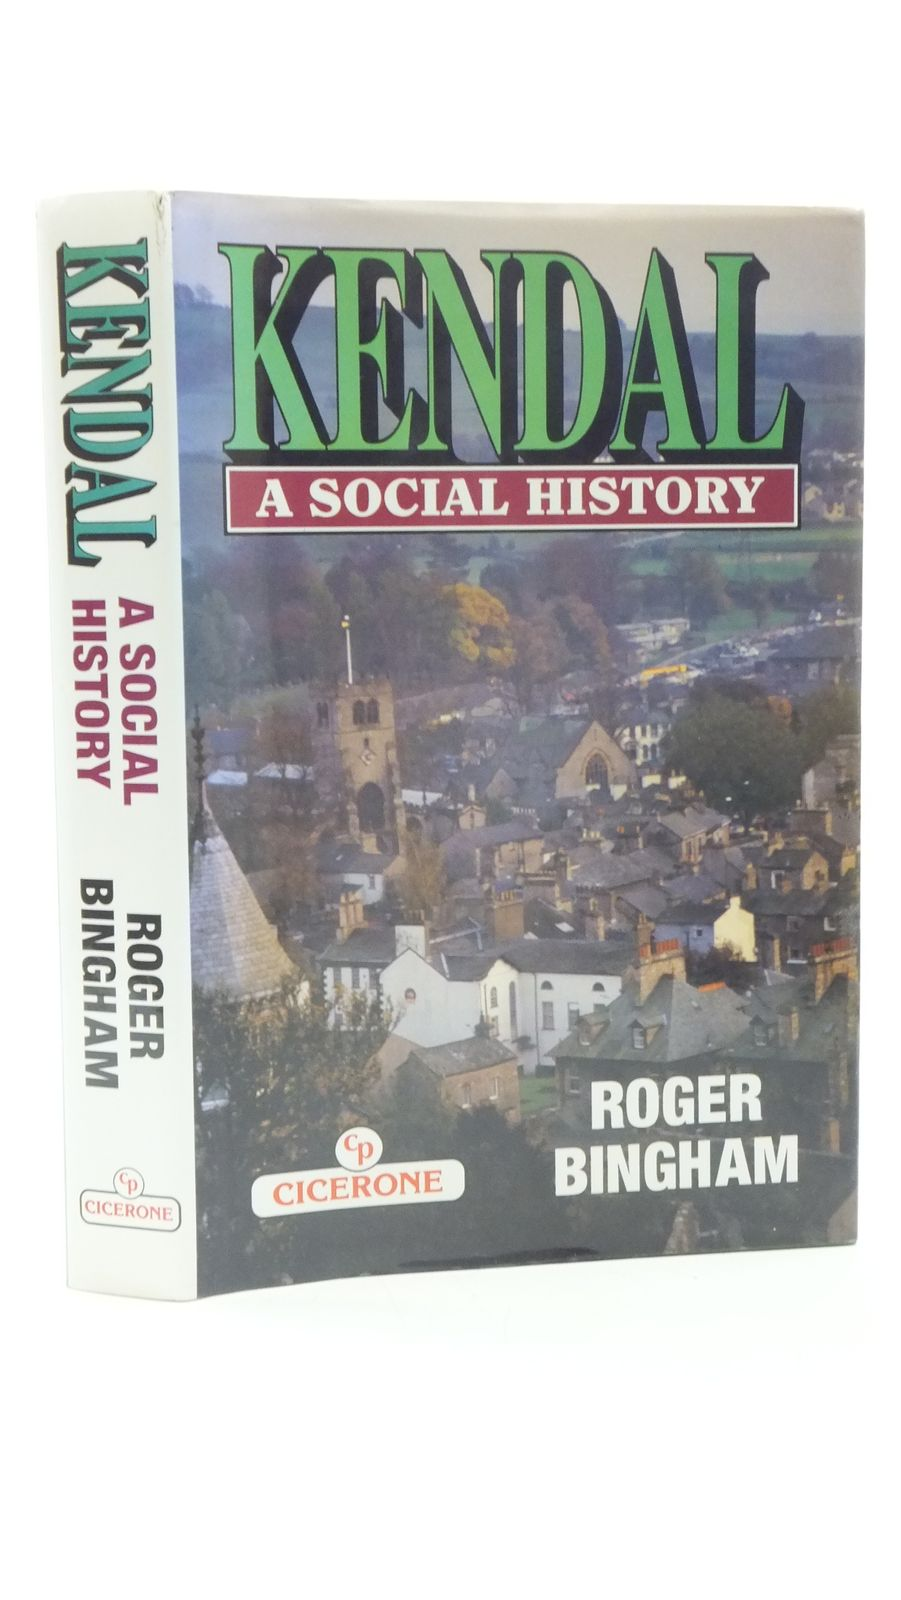 Photo of KENDAL A SOCIAL HISTORY